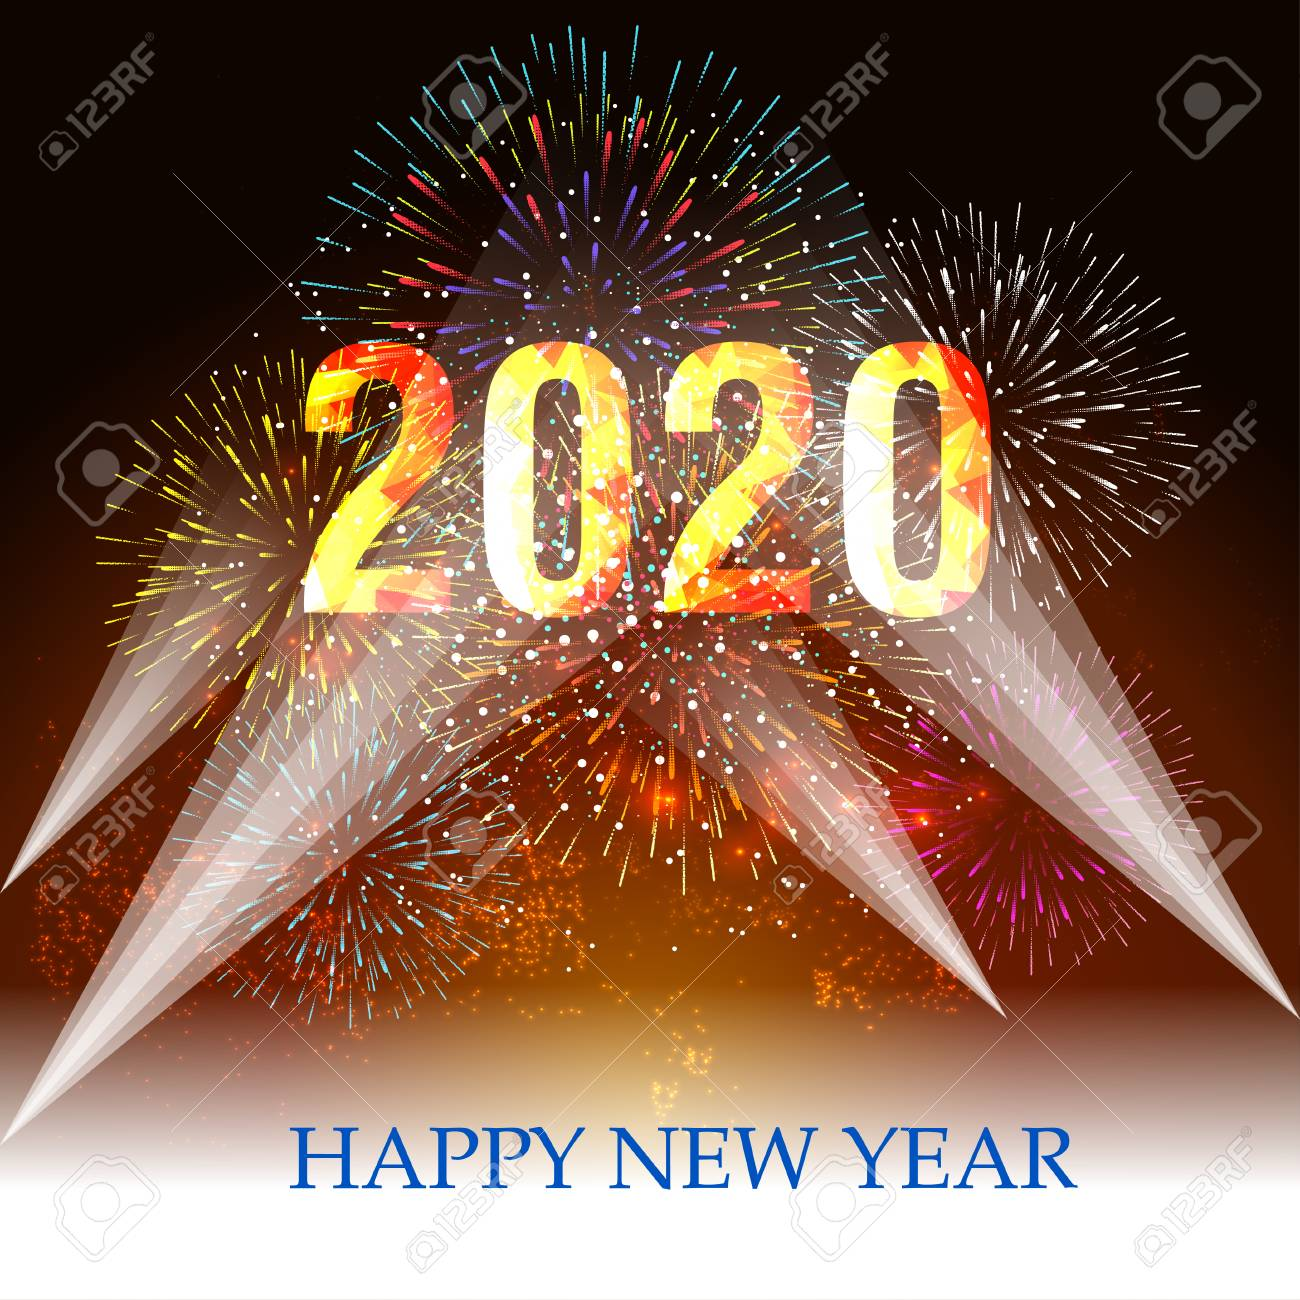 New Year 2020 Background Happy New Year 2020 Background With Fireworks. Royalty Free